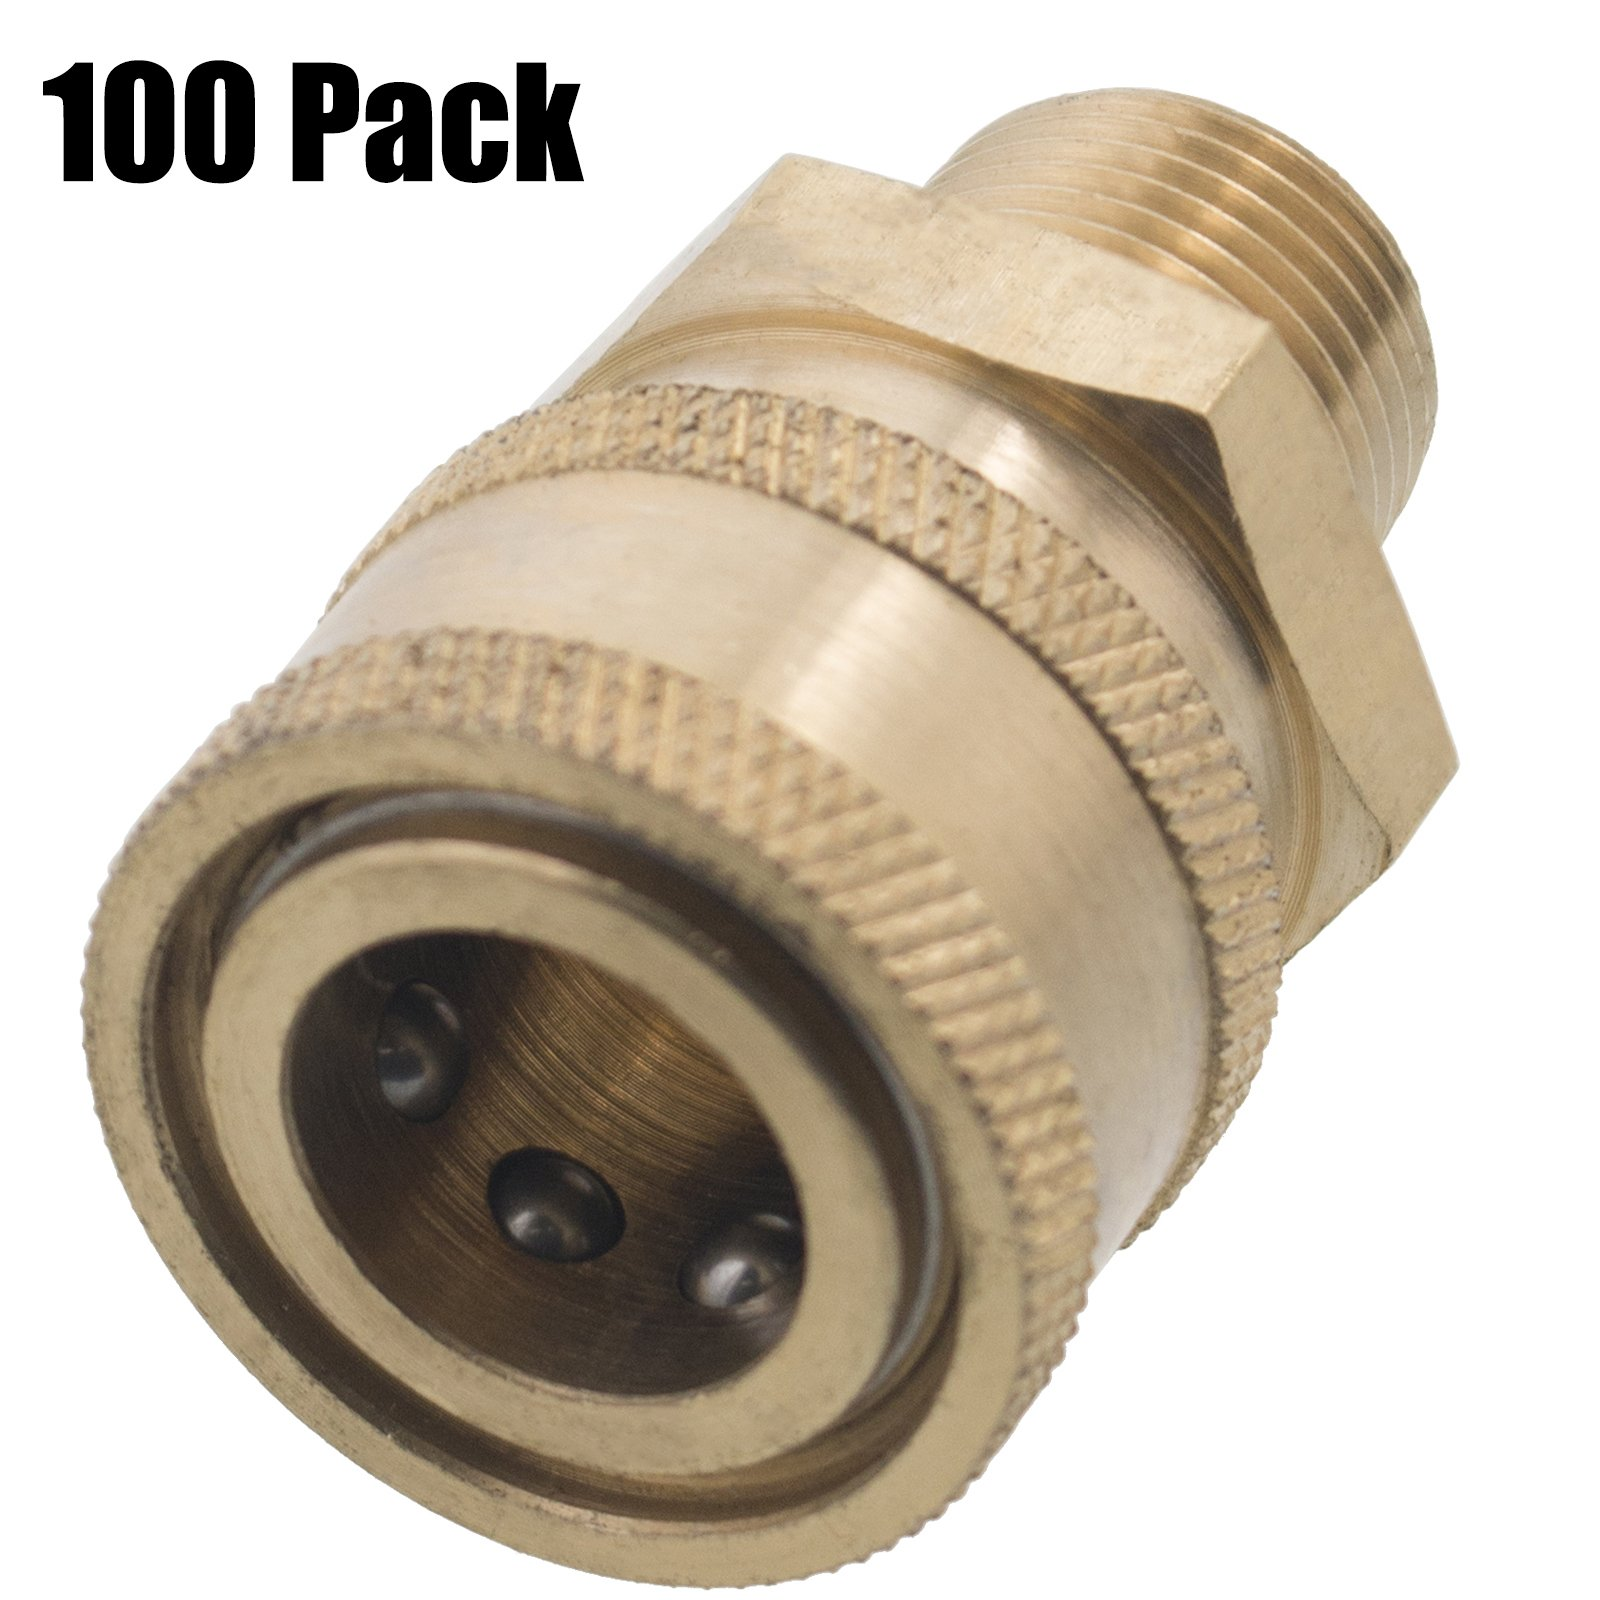 Erie Tools 100 3/8in. MPT Male Brass Socket Quick Connect Coupler 4000 PSI 10 GPM for Pressure Washer Nozzle Gun Hose Wand